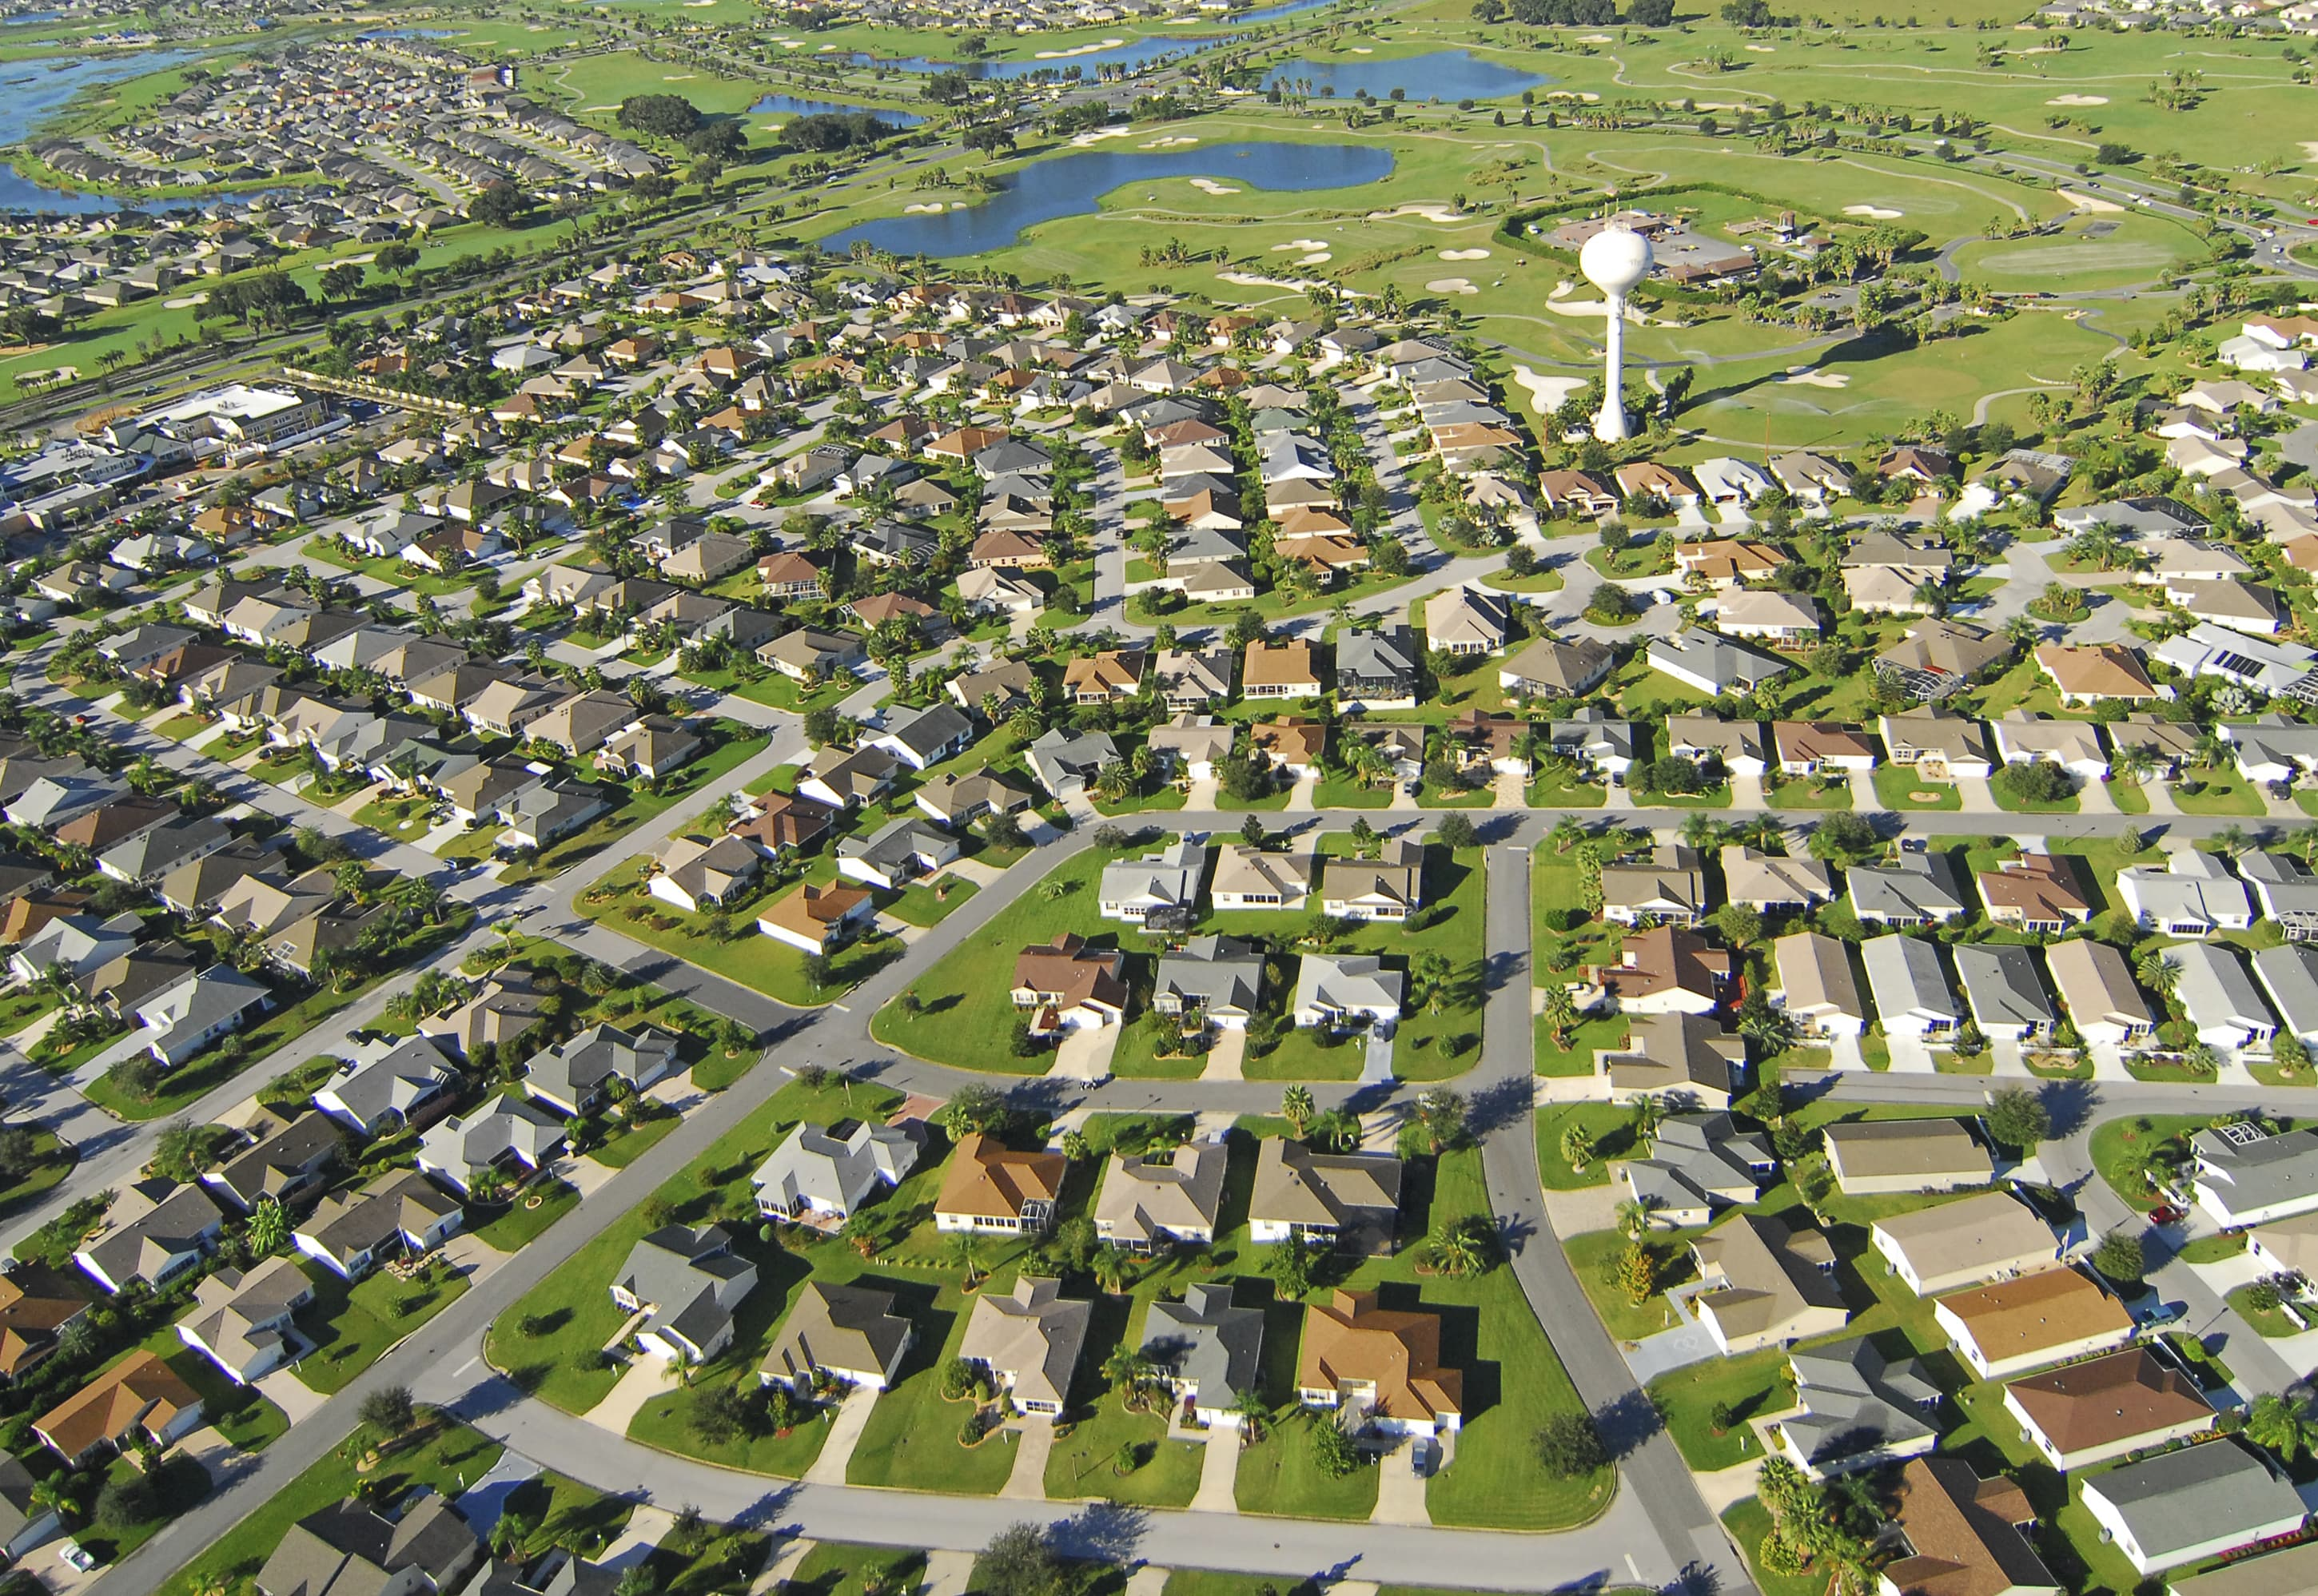 Premium: Aerial view of new homes and golf course in The Villages, Florida.